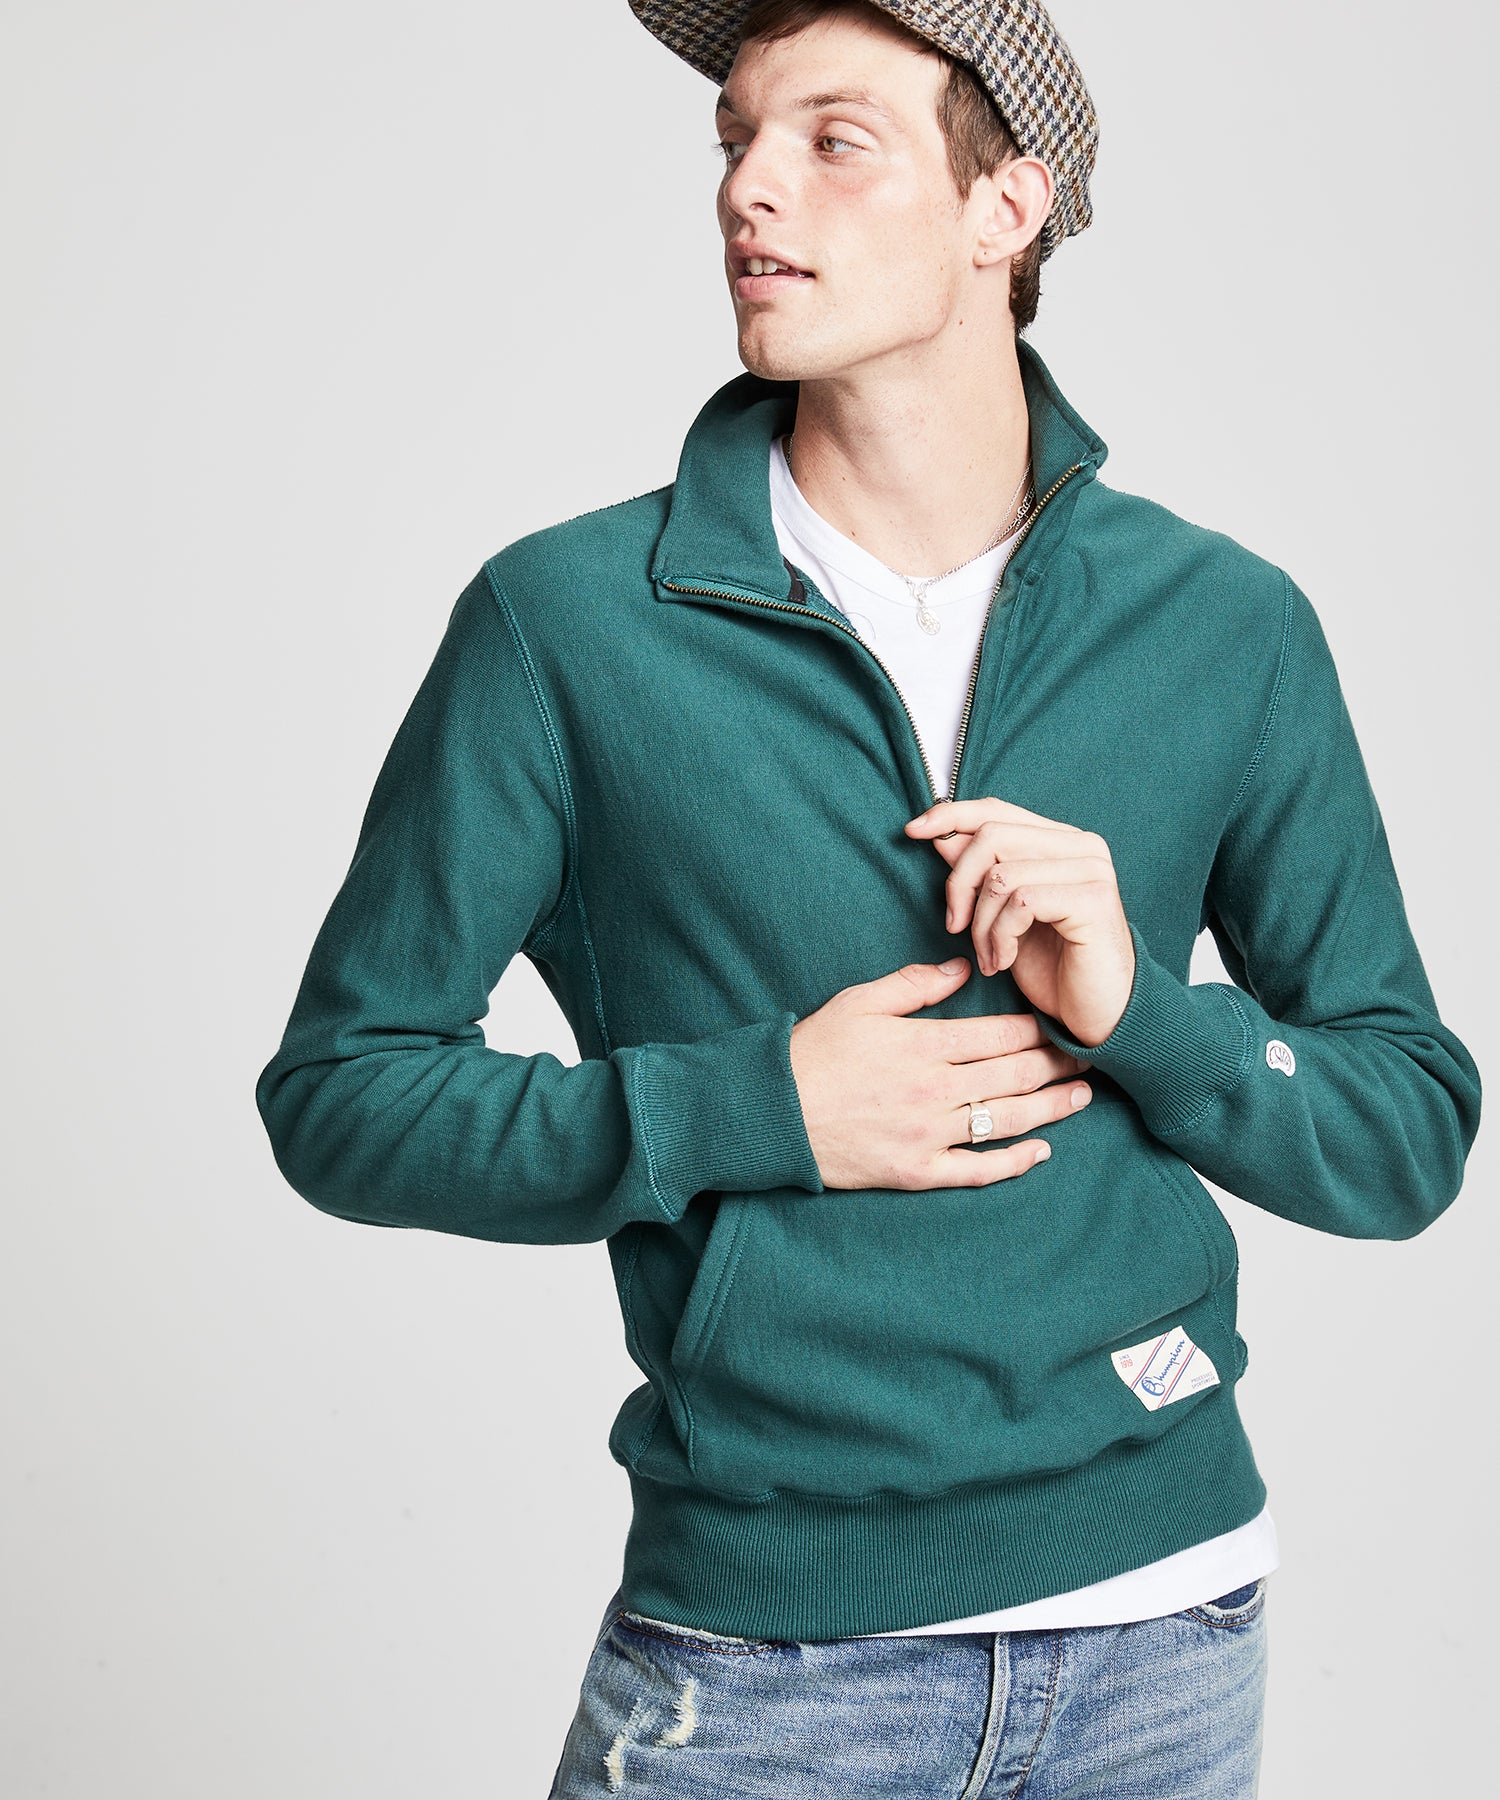 Quarter Zip Reverse Weave Sweatshirt in Storm Green